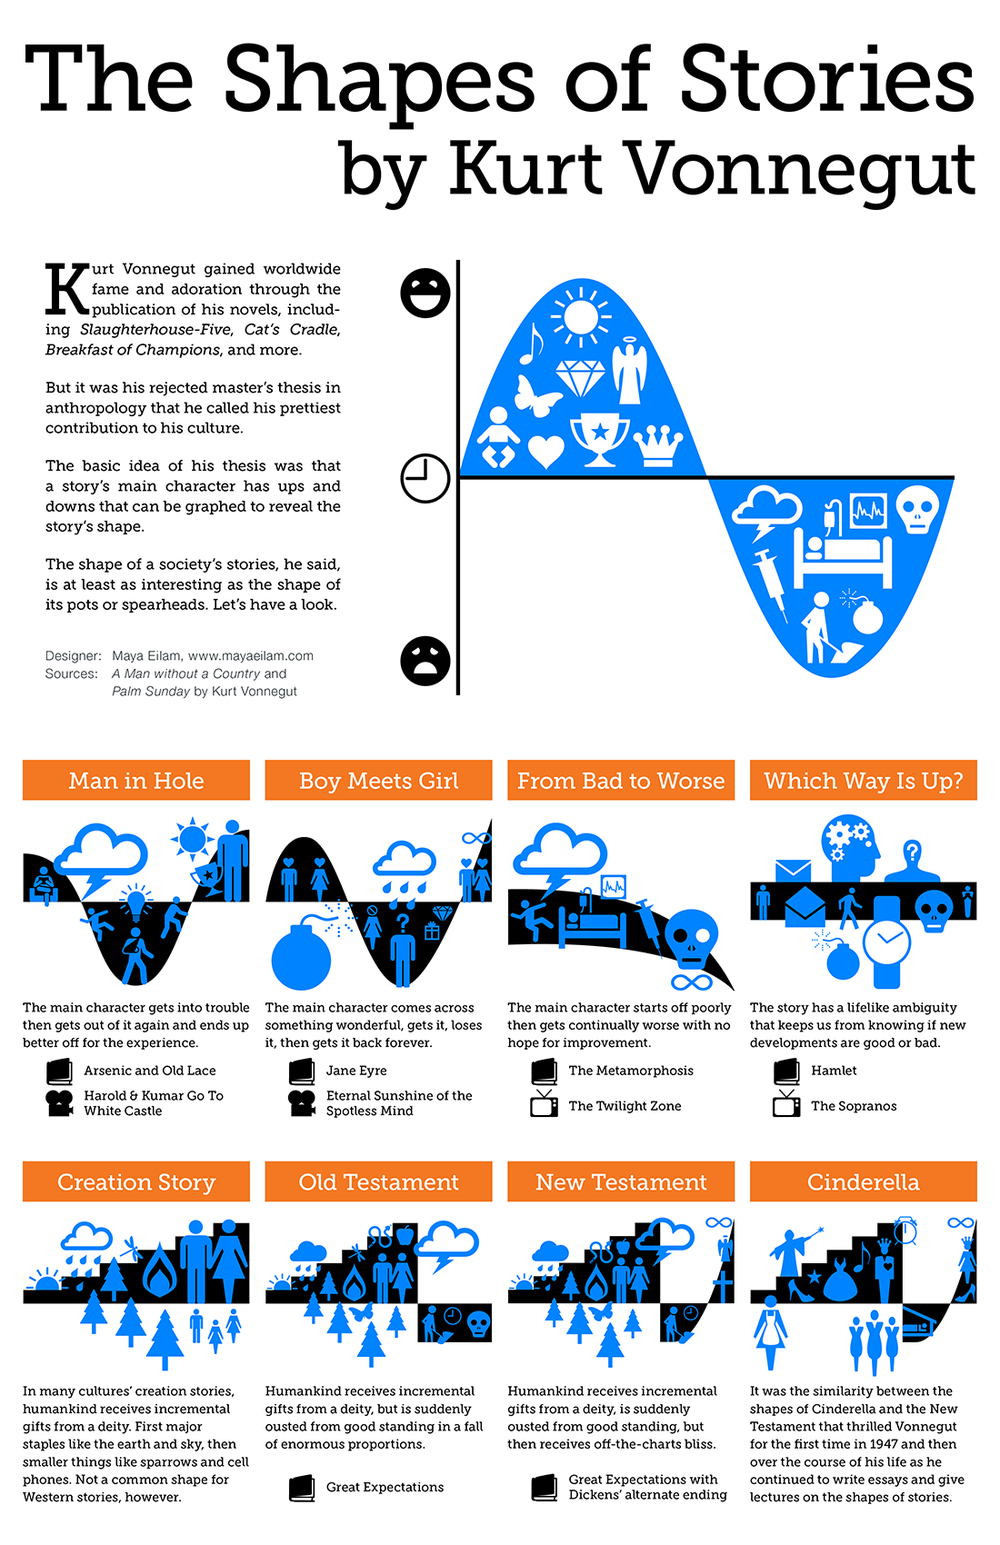 From http://mayaeilam.com/2012/01/01/the-shapes-of-stories-a-kurt-vonnegut-infographic/